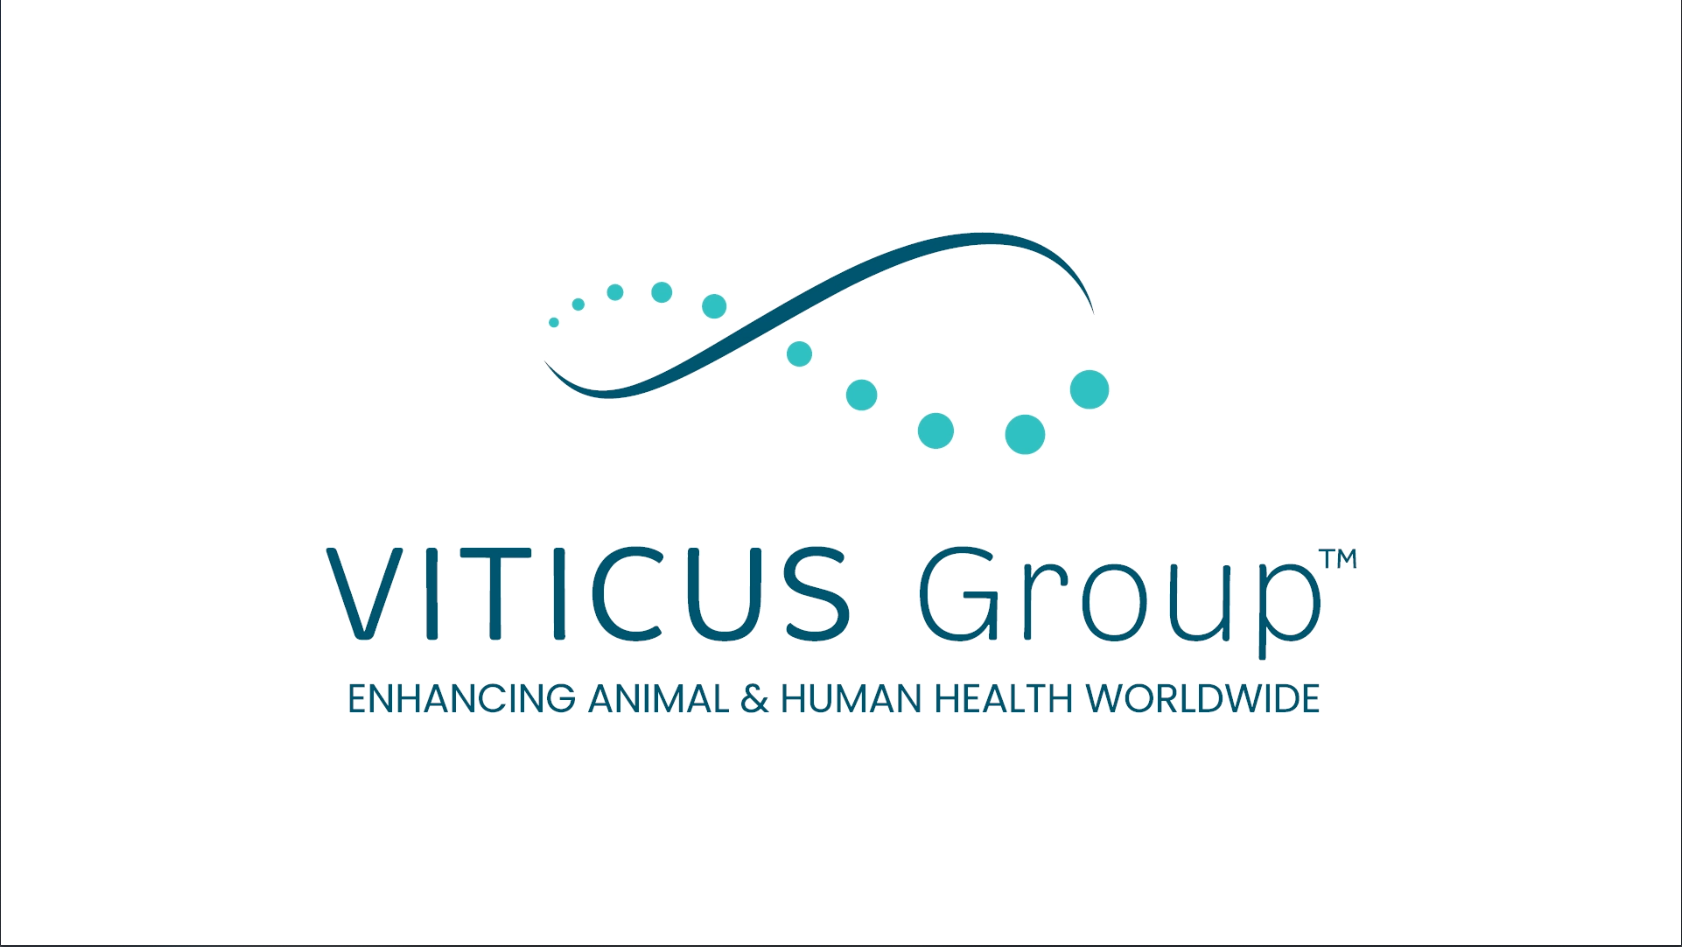 Covid-19 Impact Video - Viticus Group 2.0